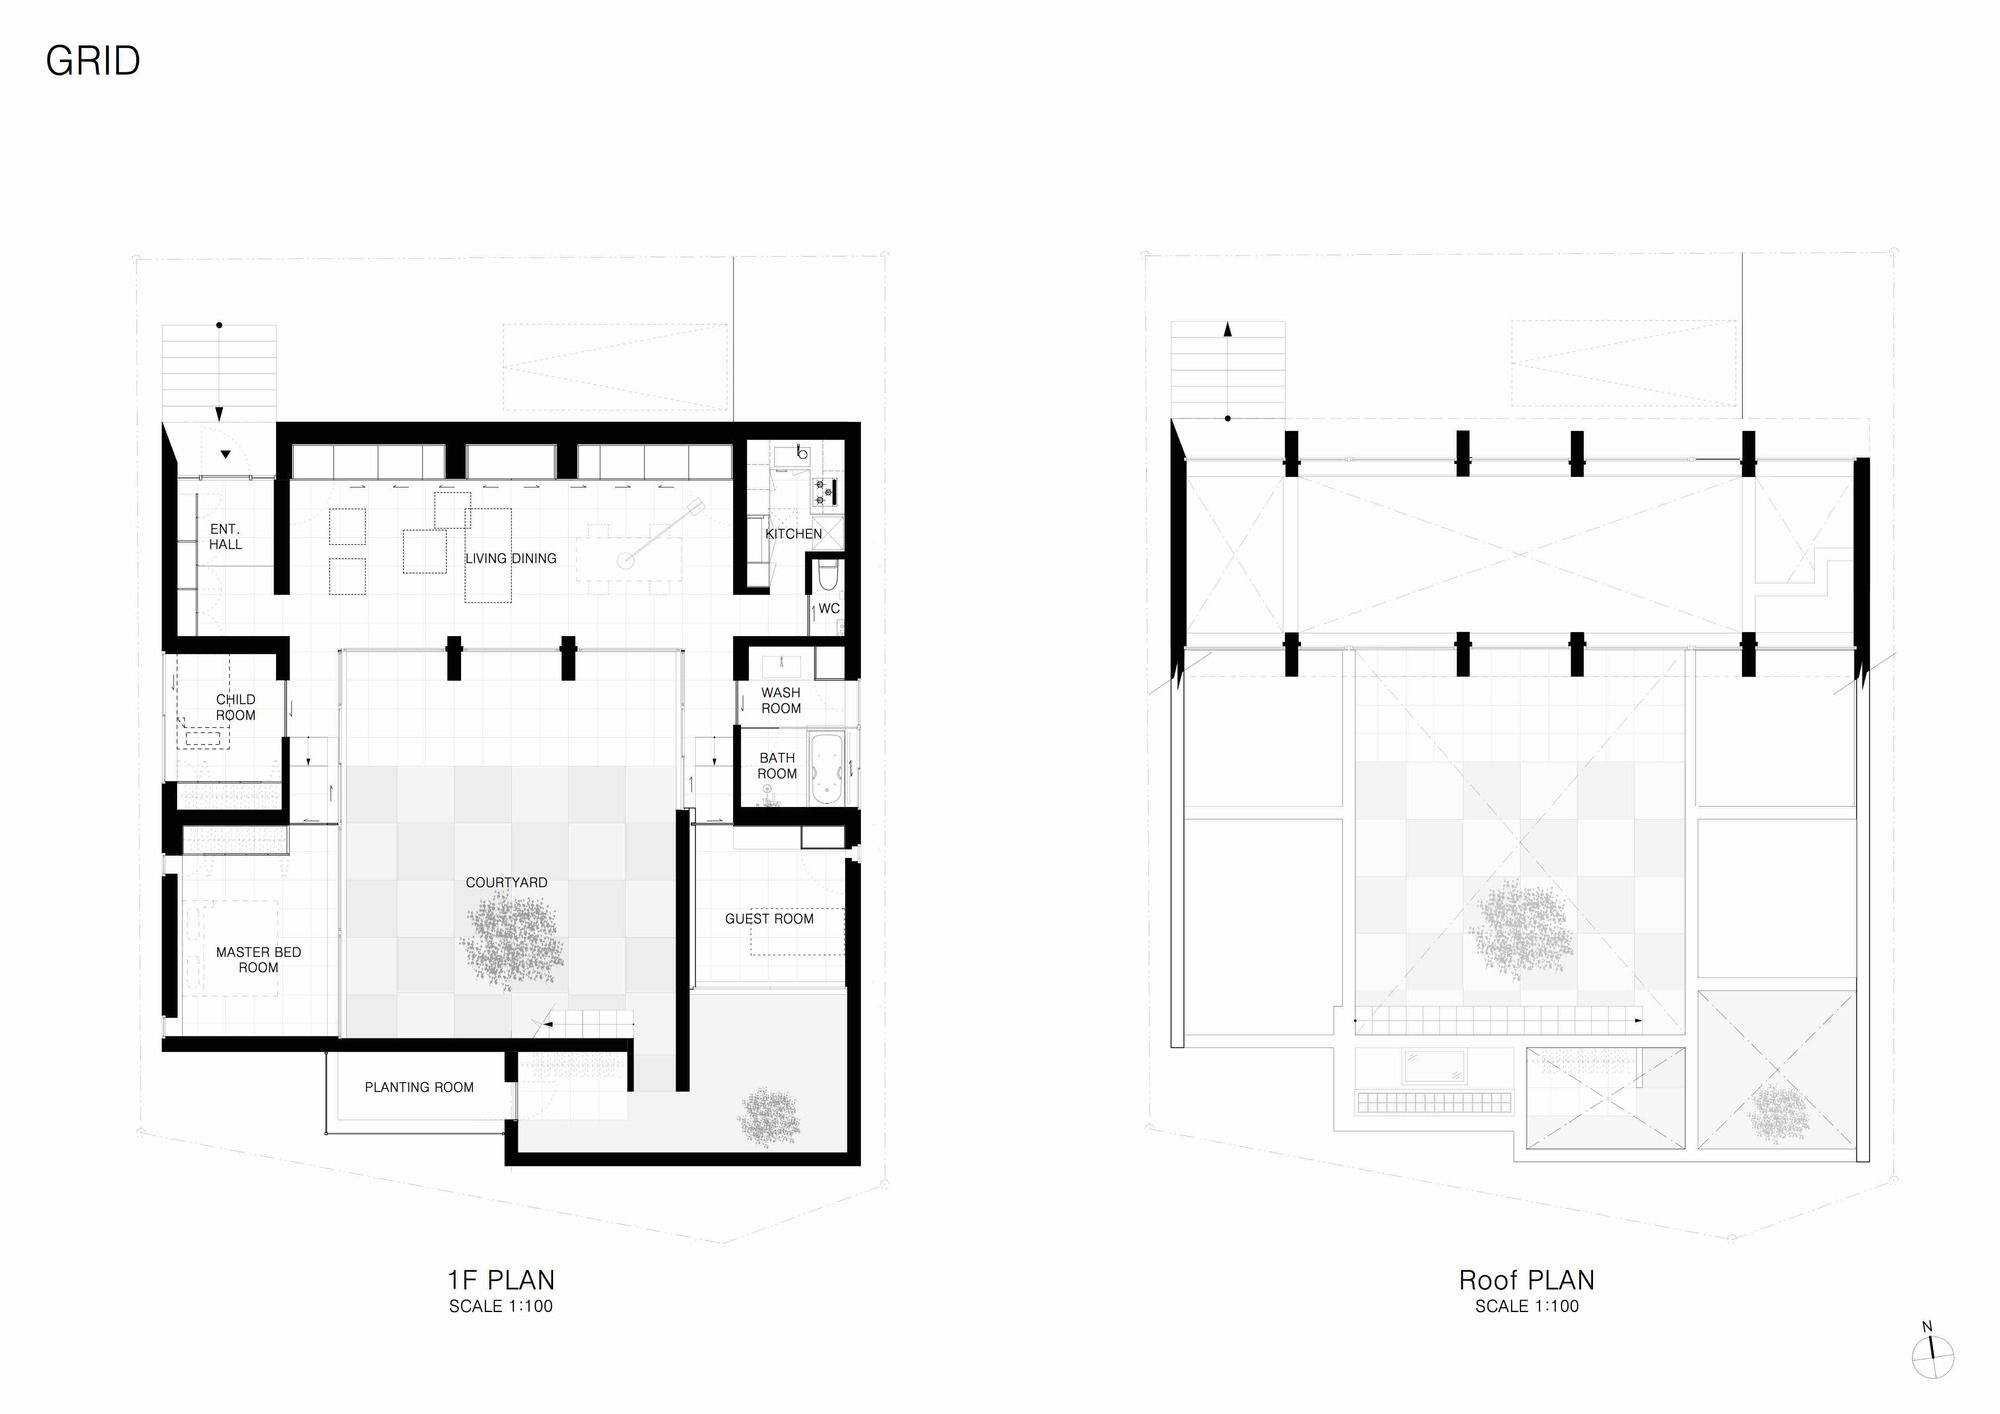 Gallery Of Grid Apollo Architects Associates 15 Architect Craftsman Floor Plans Wellness Design